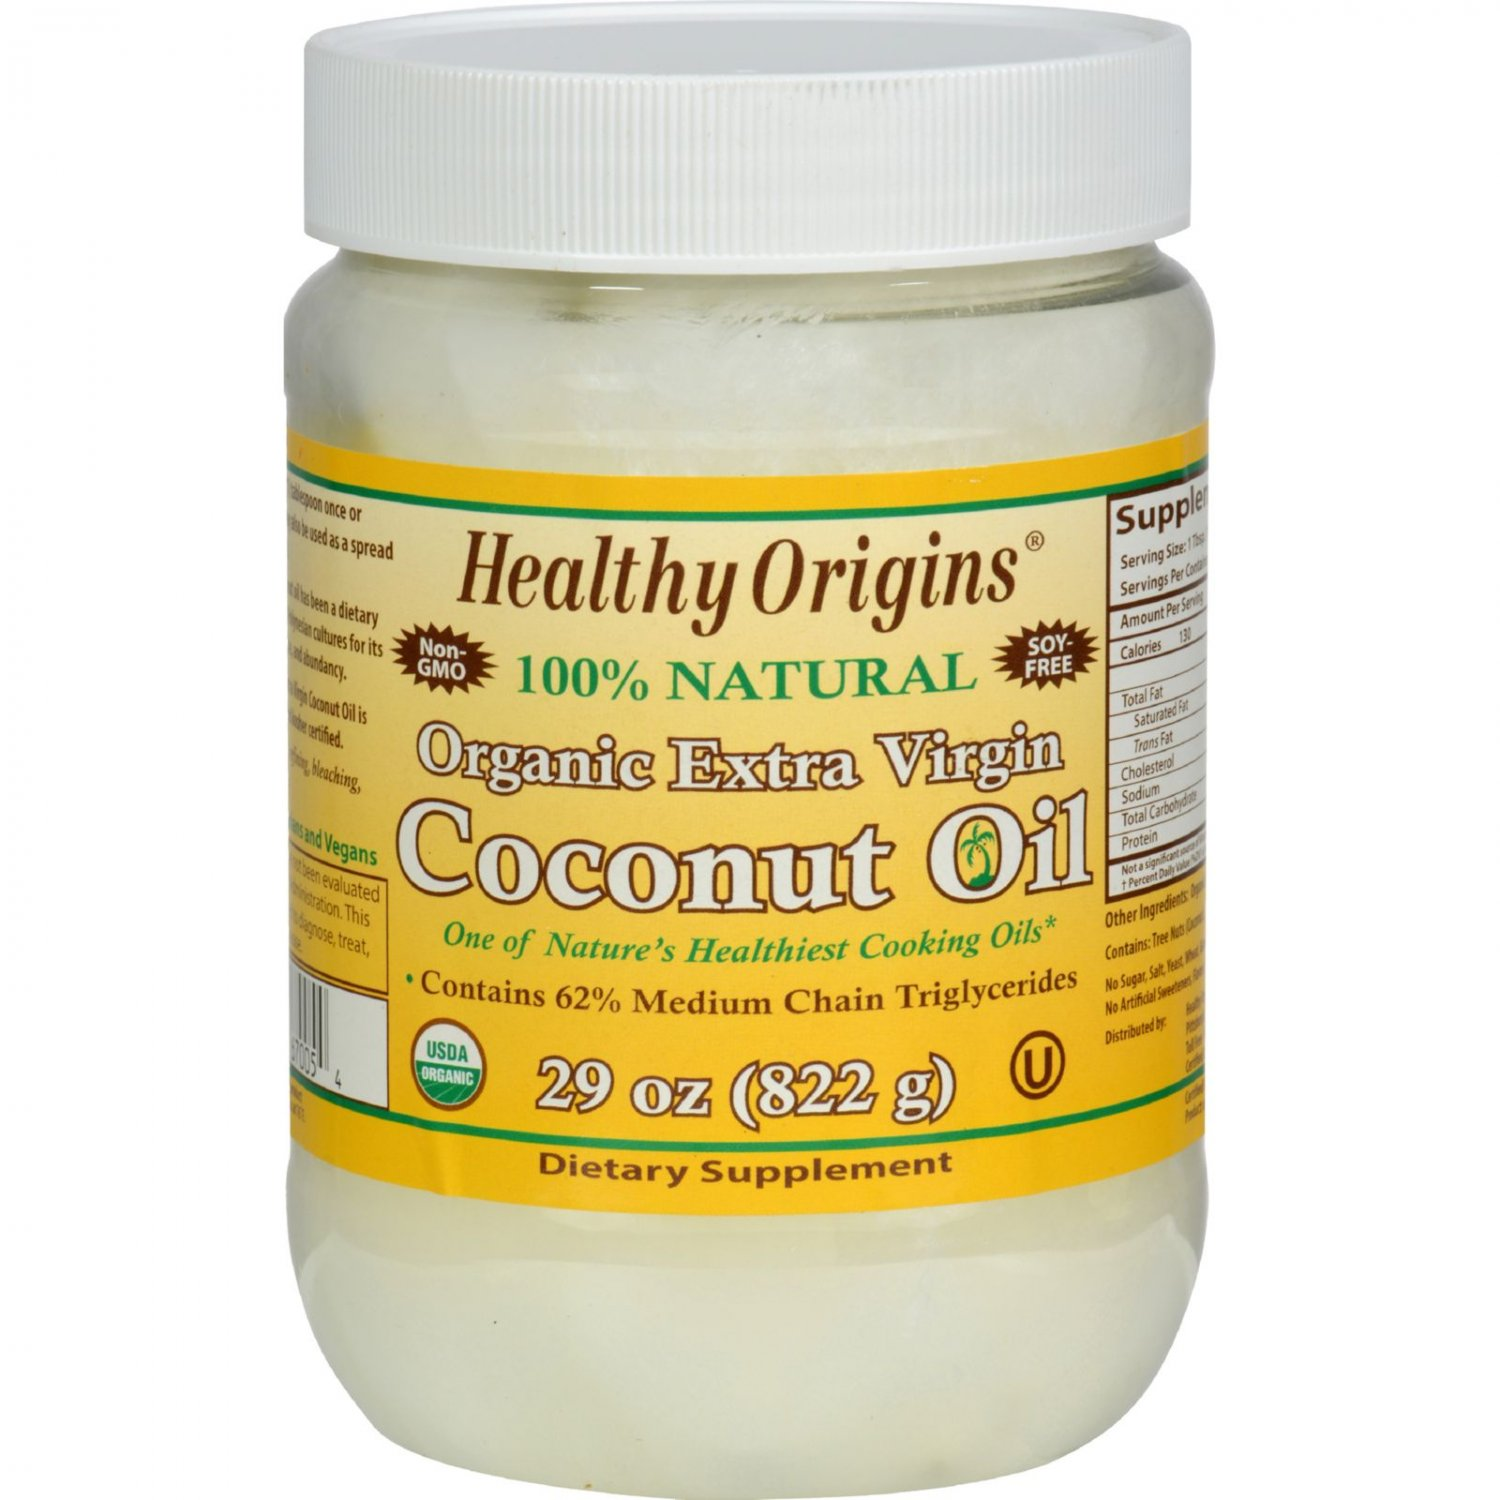 Healthy Origins Coconut Oil - Organic - Extra Virgin - 29 oz